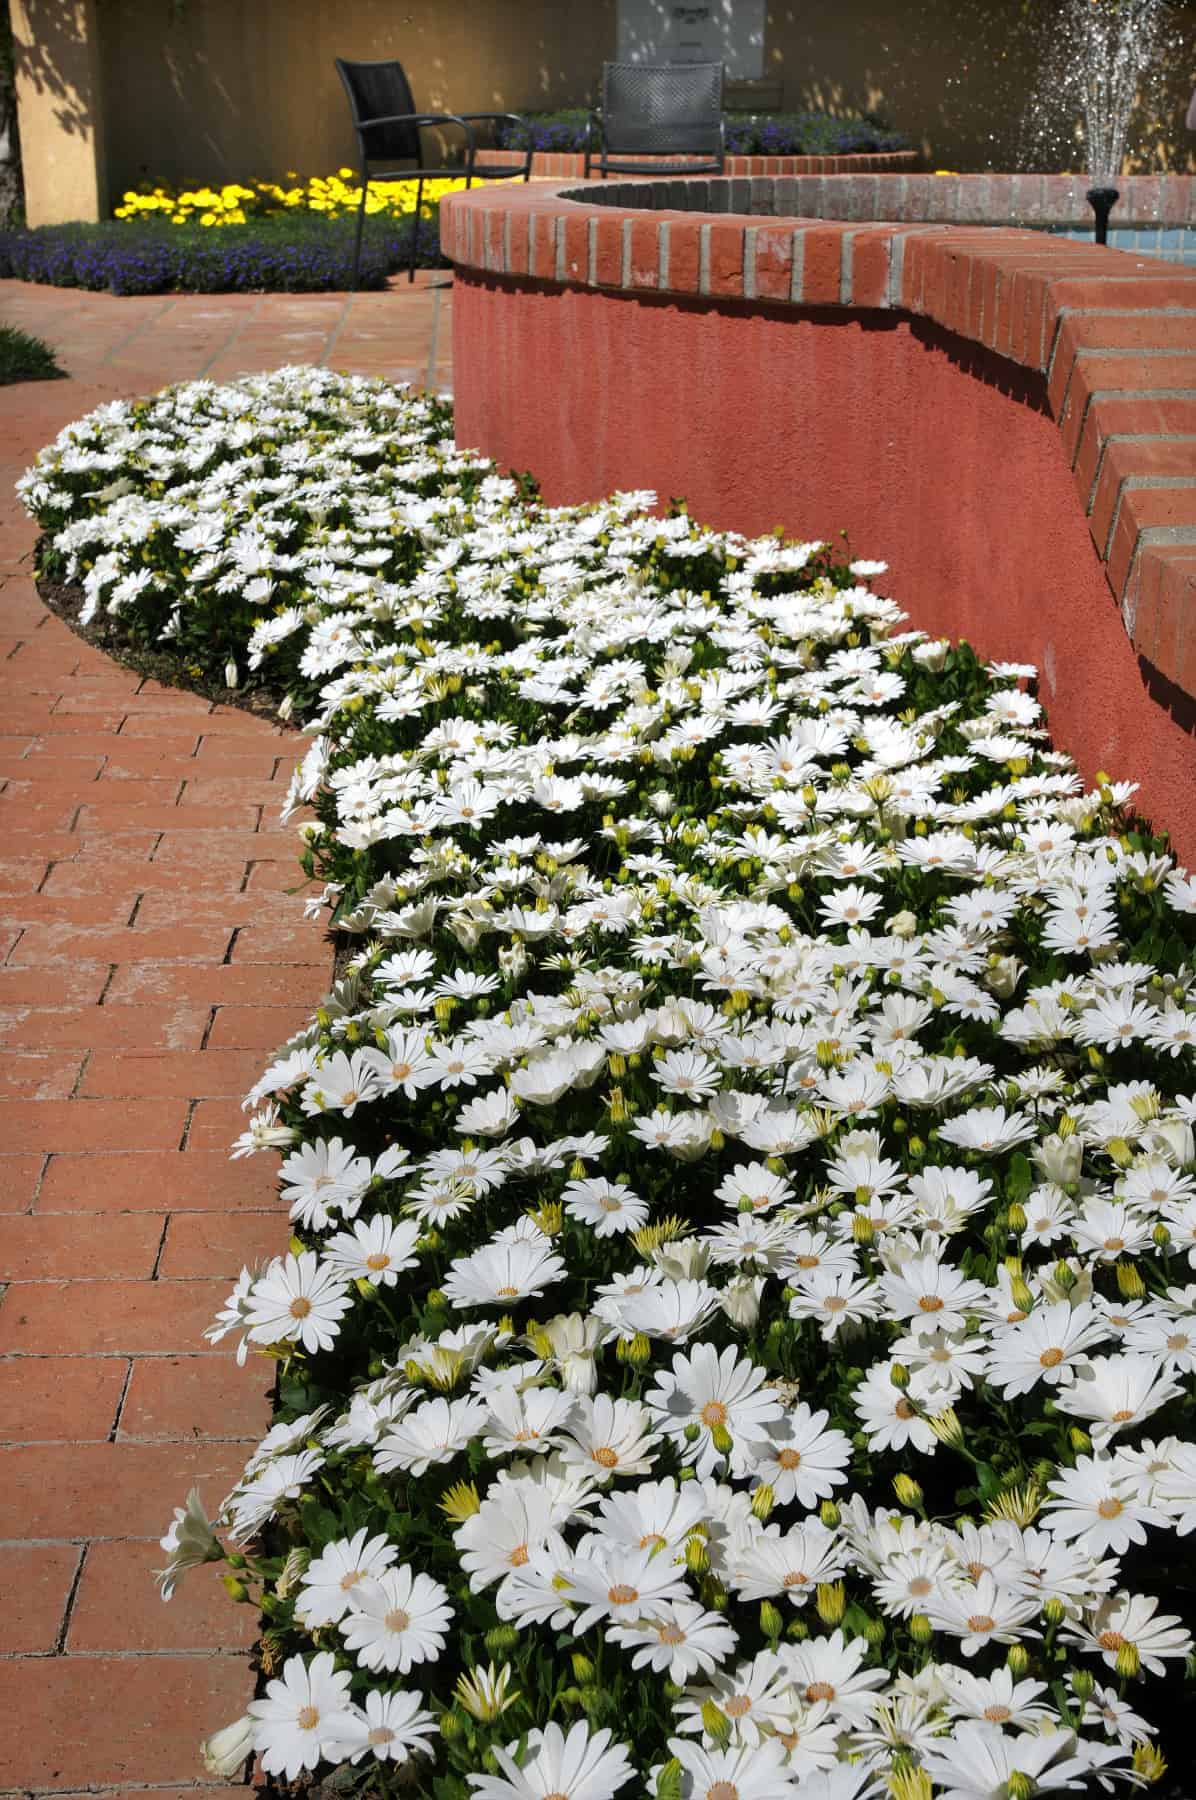 Osteospermum akila daisy white f1 all america selections osteospermum akila daisy white f1 2014 aas bedding plant award winner white osteospermums are not izmirmasajfo